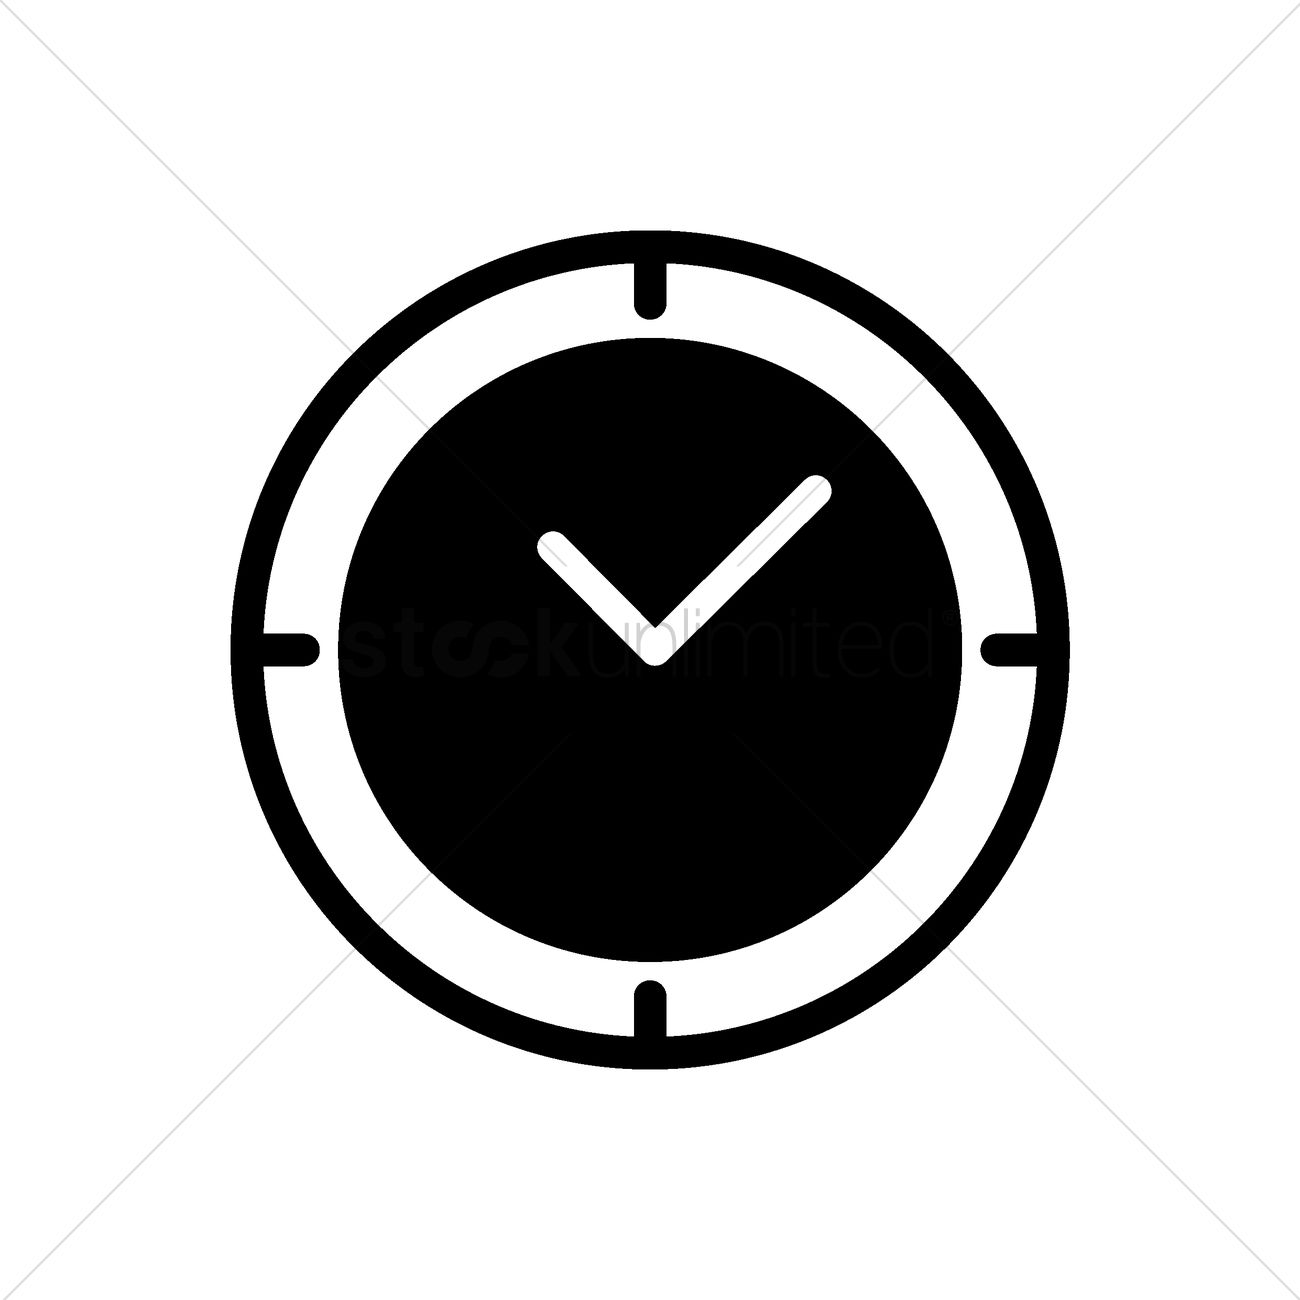 clock vector image 2003995 stockunlimited rh stockunlimited com clock vector eps free clock vector eps free